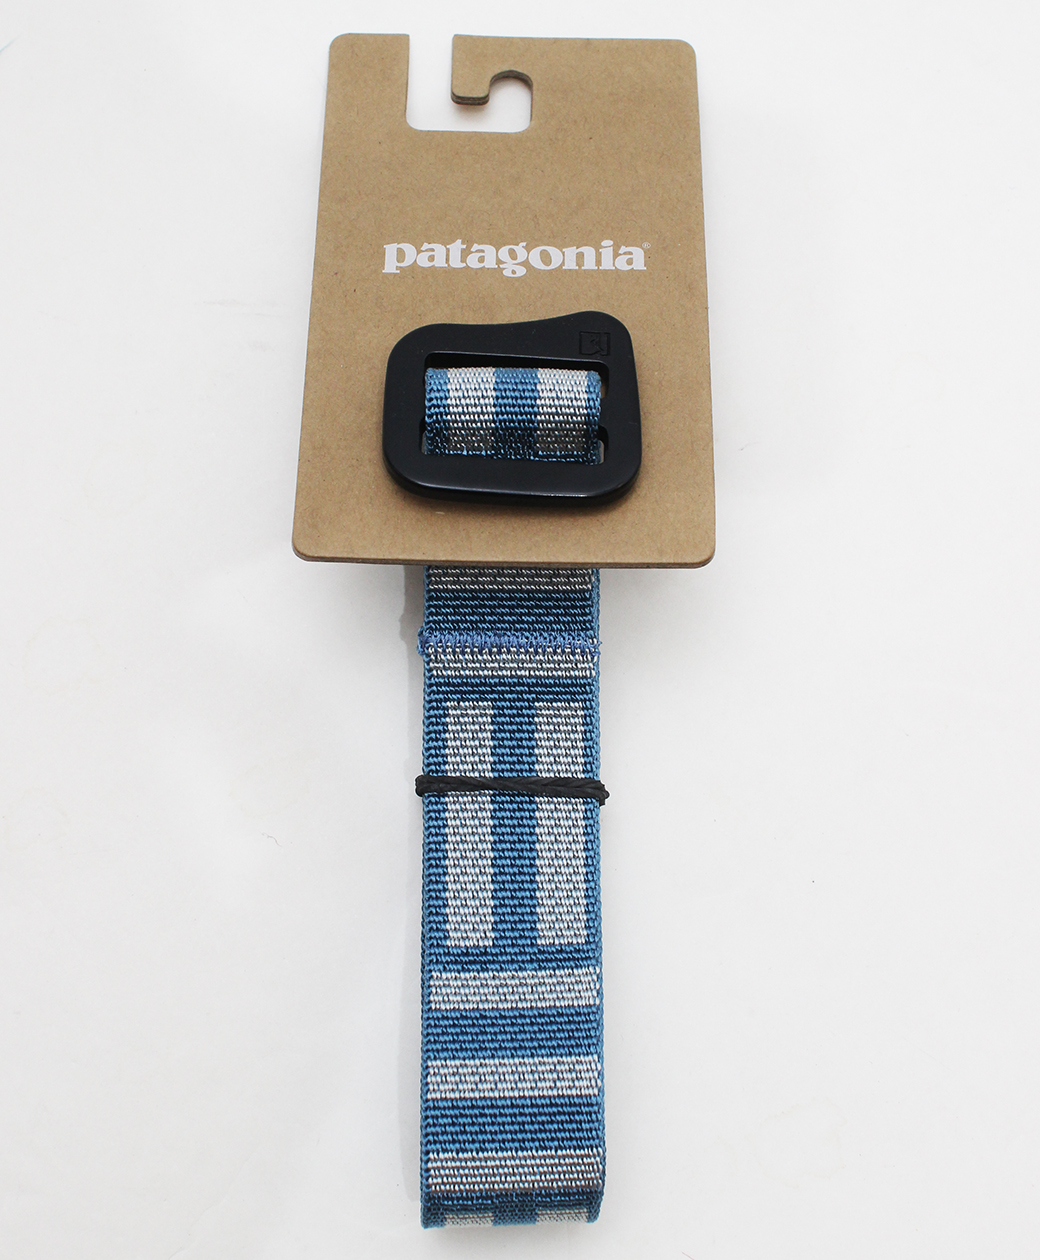 patagonia Friction Belt(FVPG)